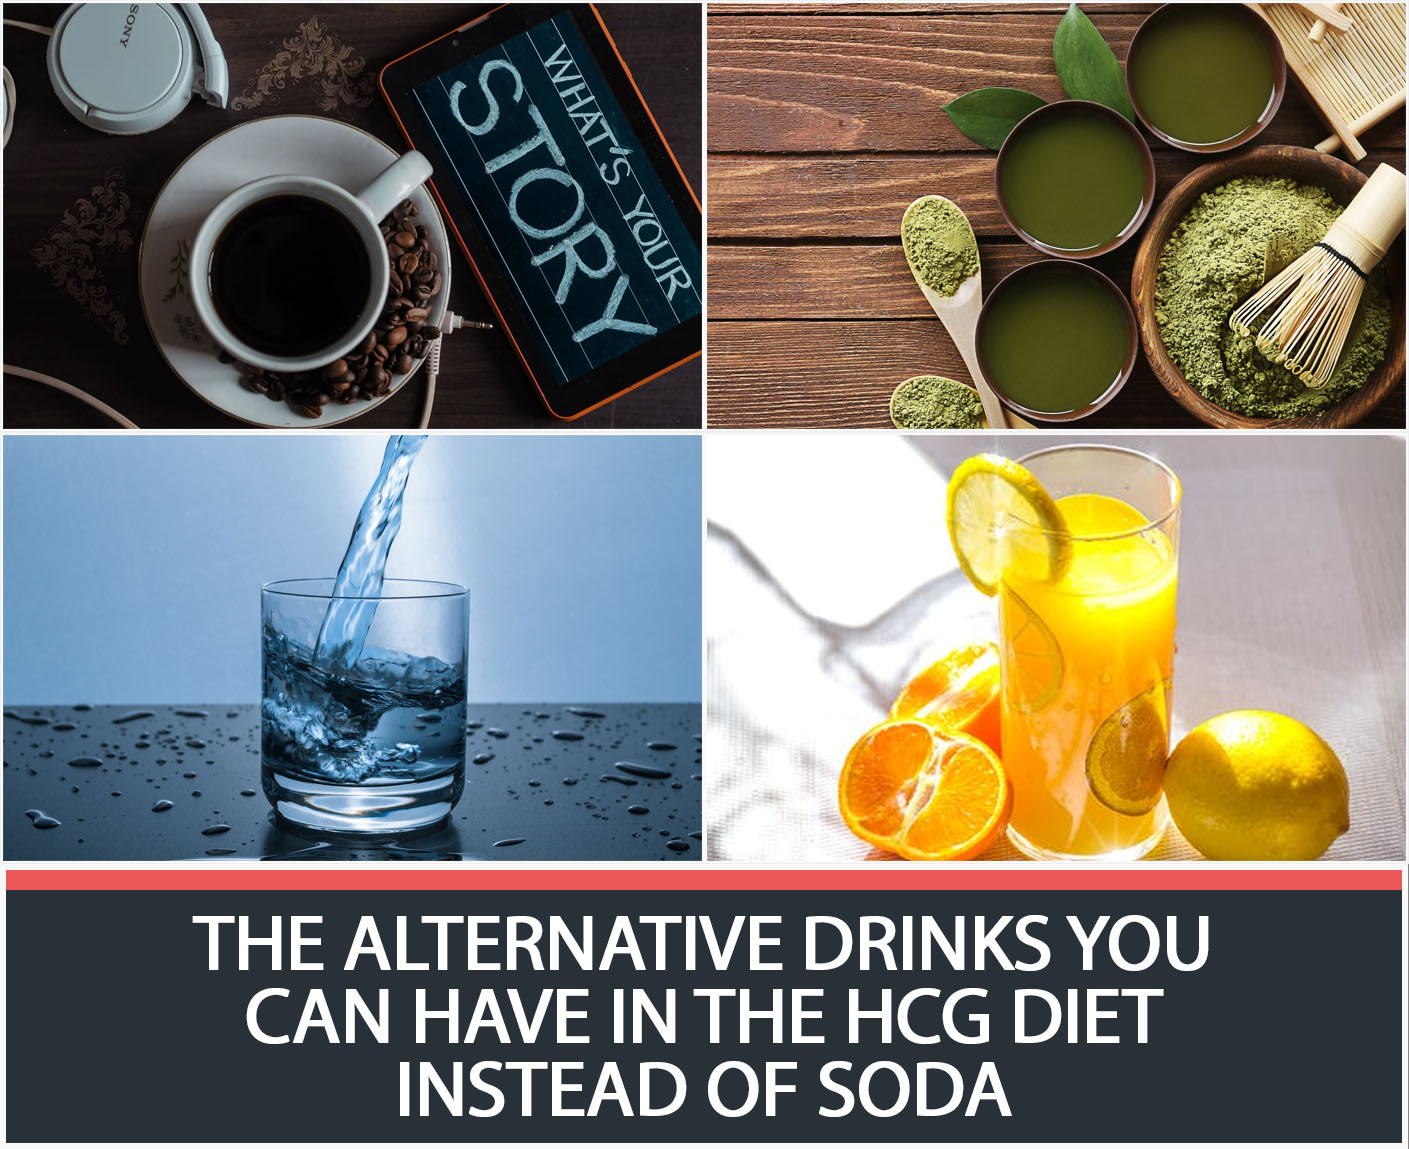 THE ALTERNATIVE DRINKS YOU CAN HAVE IN THE HCG DIET INSTEAD OF SODA